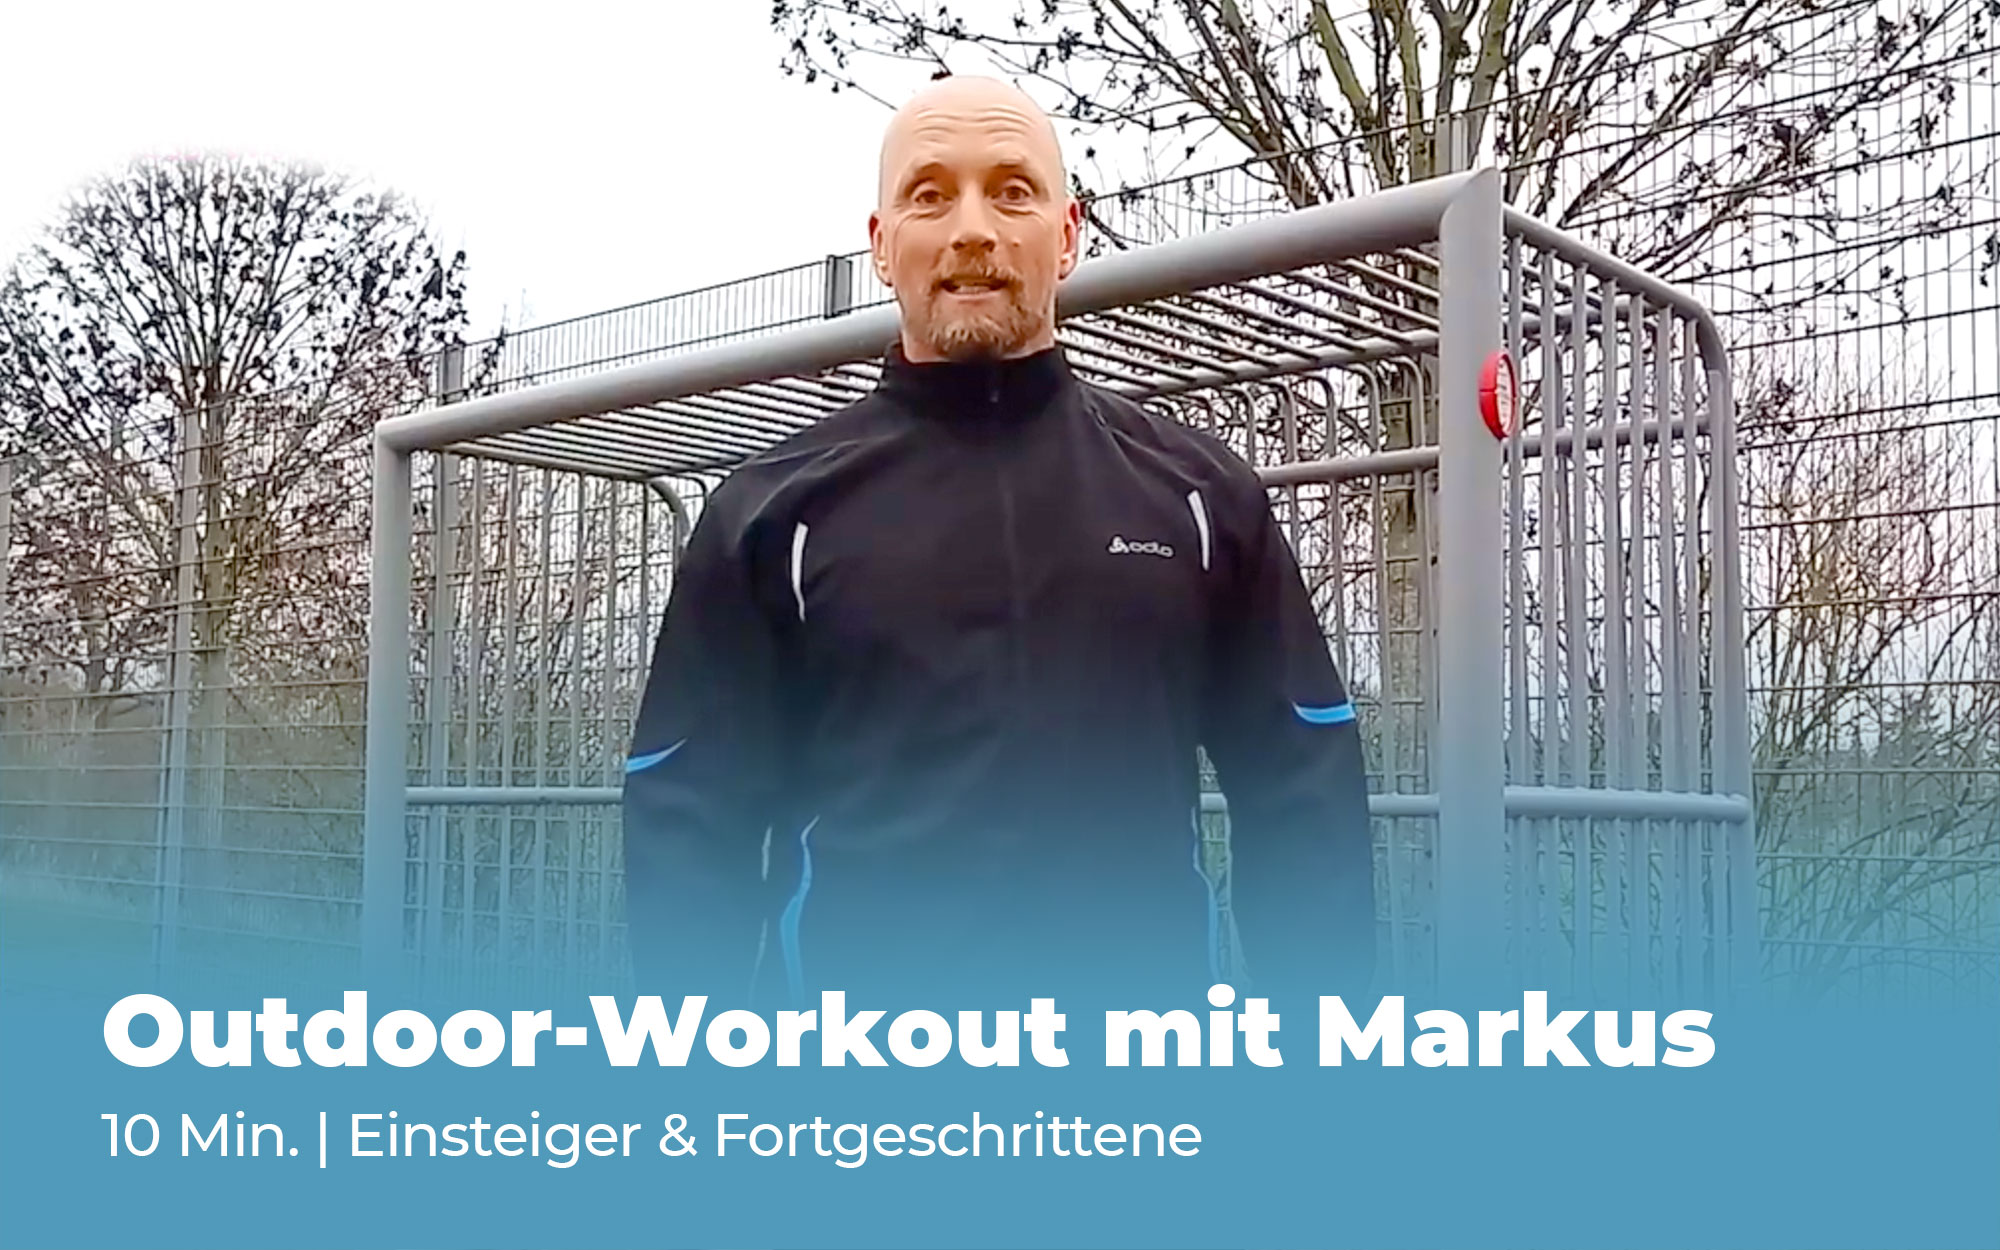 Outdoor-Workout mit Markus